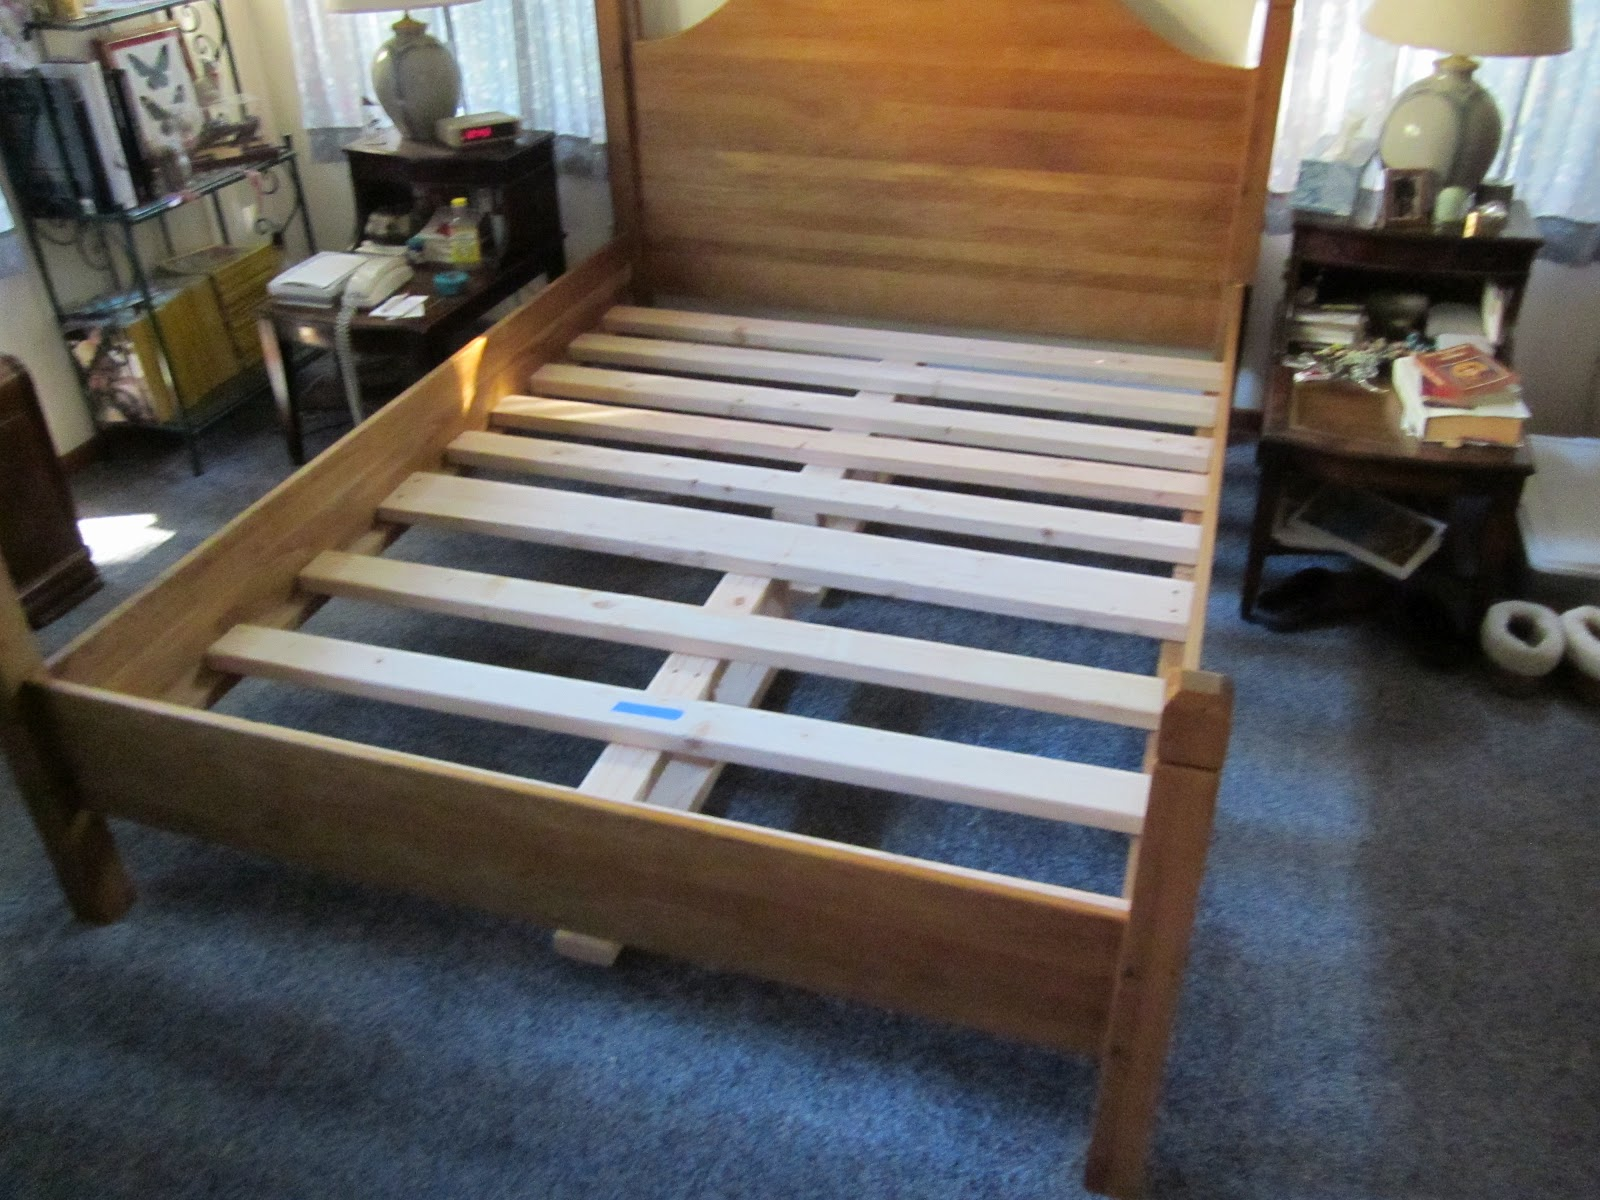 The Perfect Foam Bed The Build or Buy Decision